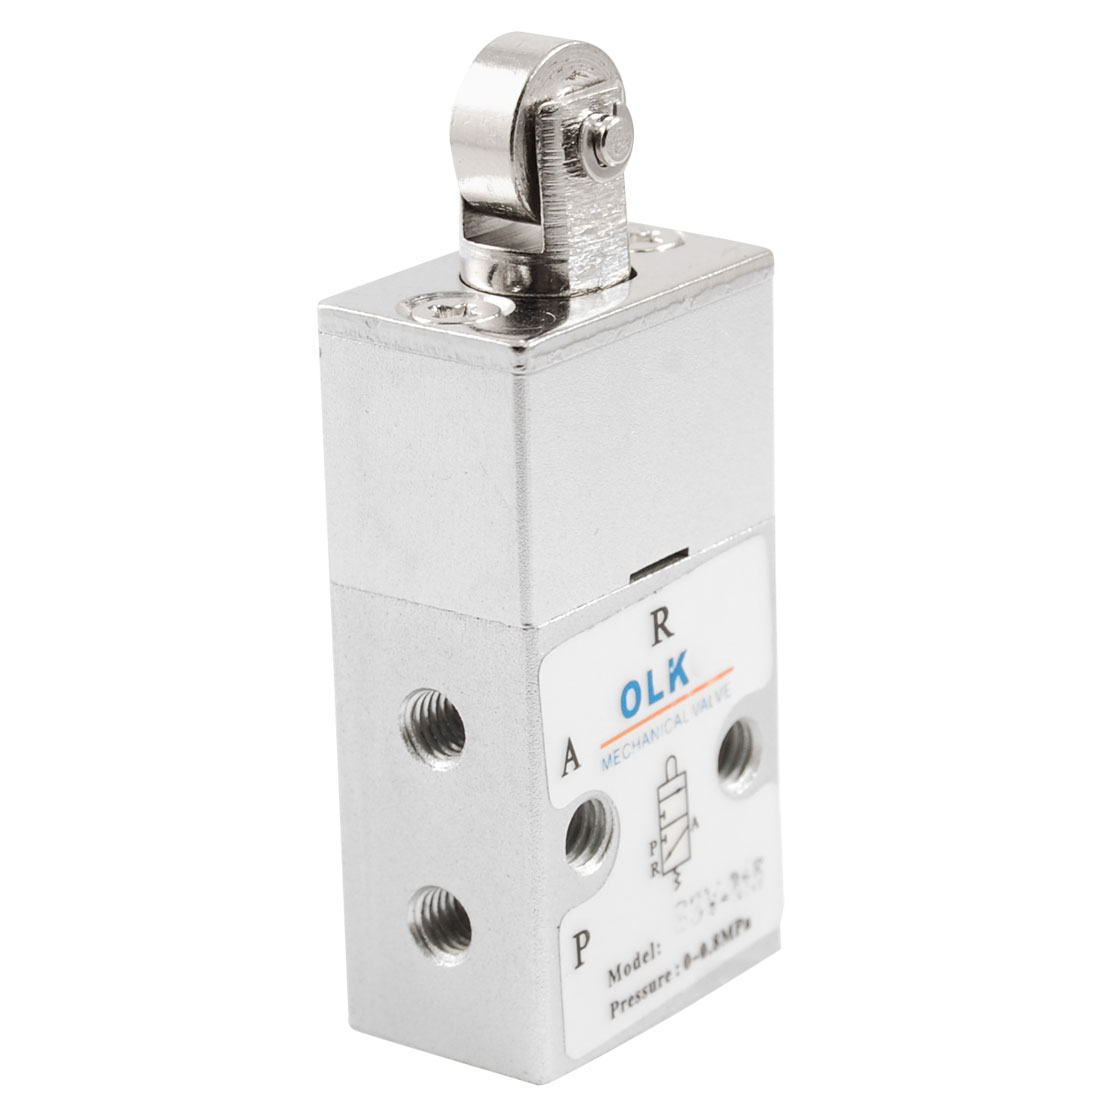 S3V-M5 2 Position 3 Way Roller Pneumatic Air Mechanical Valve